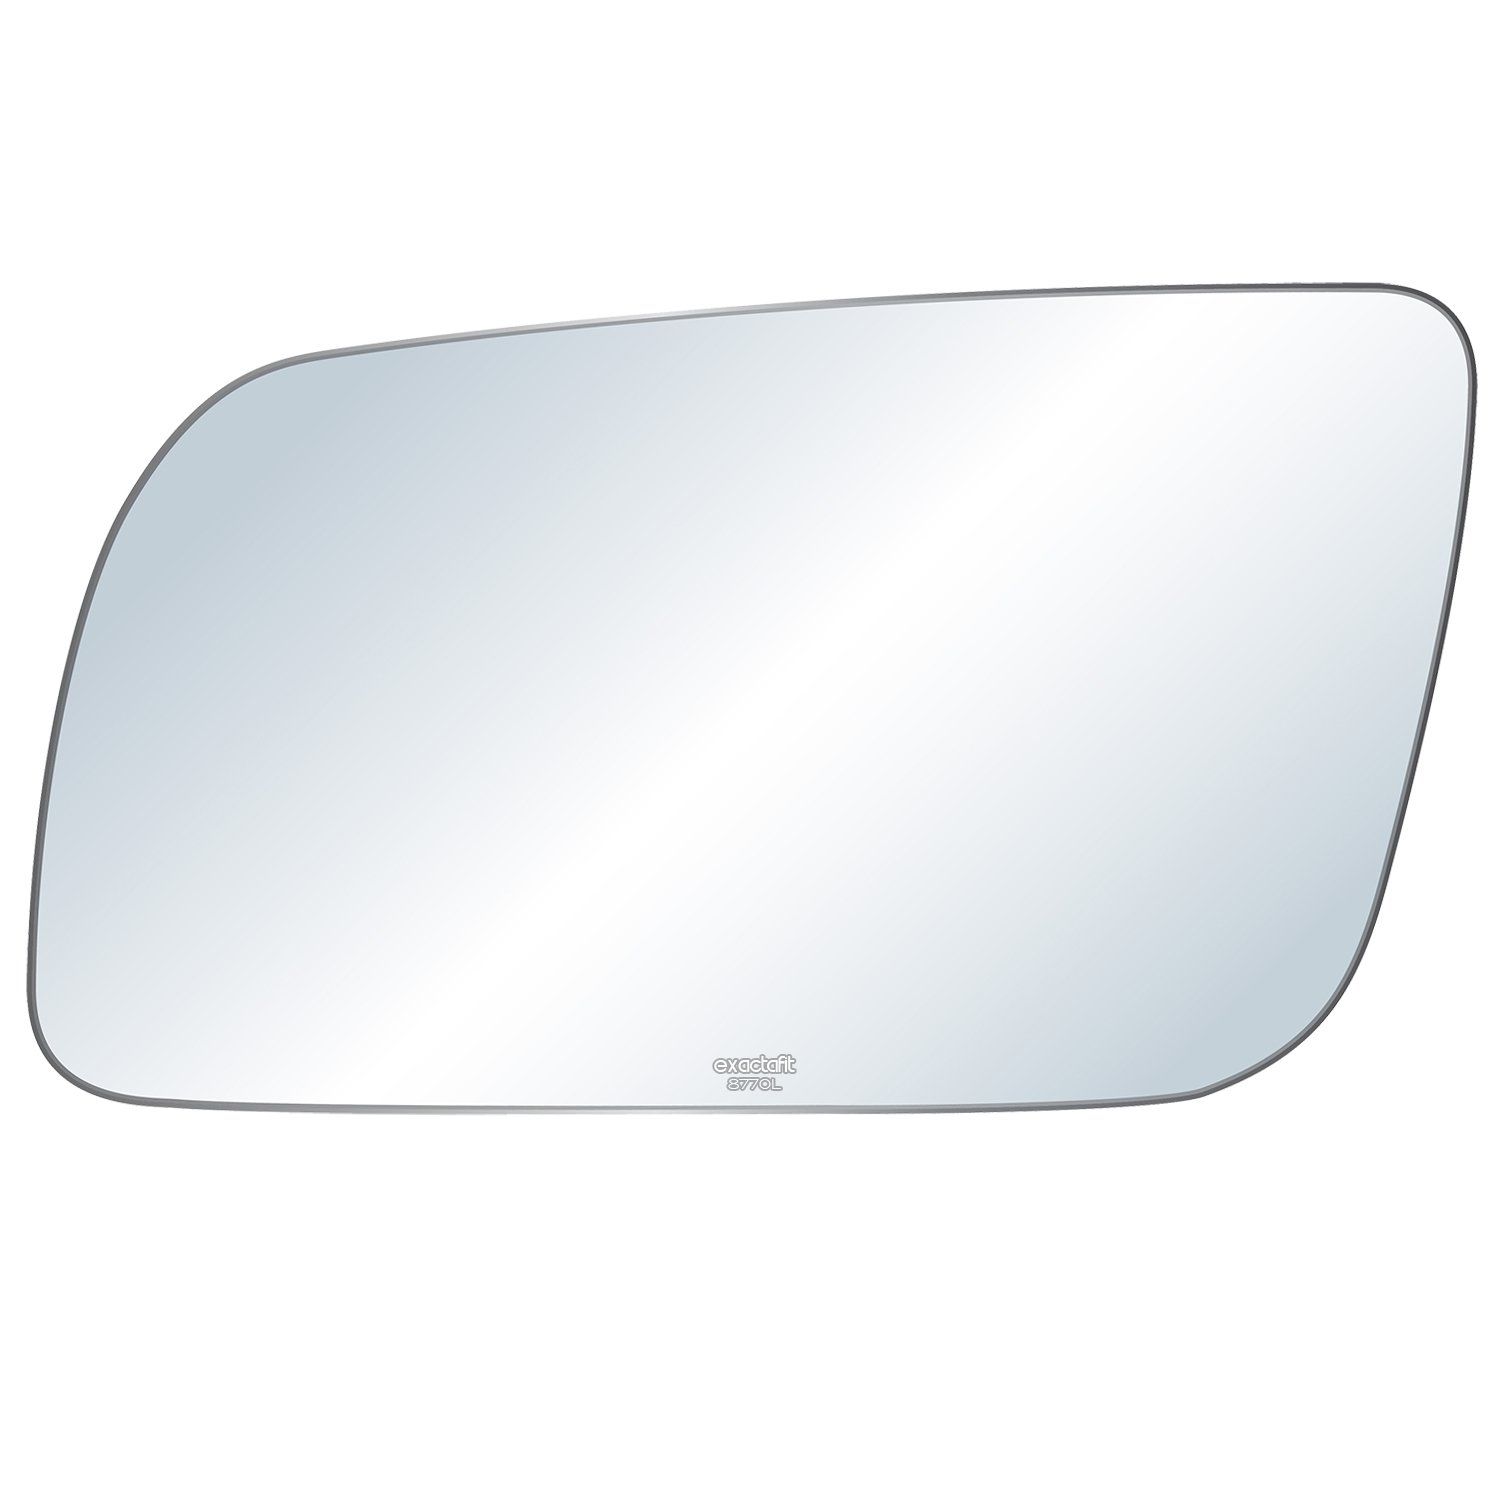 exactafit 8770L Replacement Lens Side Power Mirror Flat Glass fits Driver Left Hand LH for Chevy GMC C//K 1500 2500 3500 Blazer Yukon Jimmy Suburban by Rugged TUFF